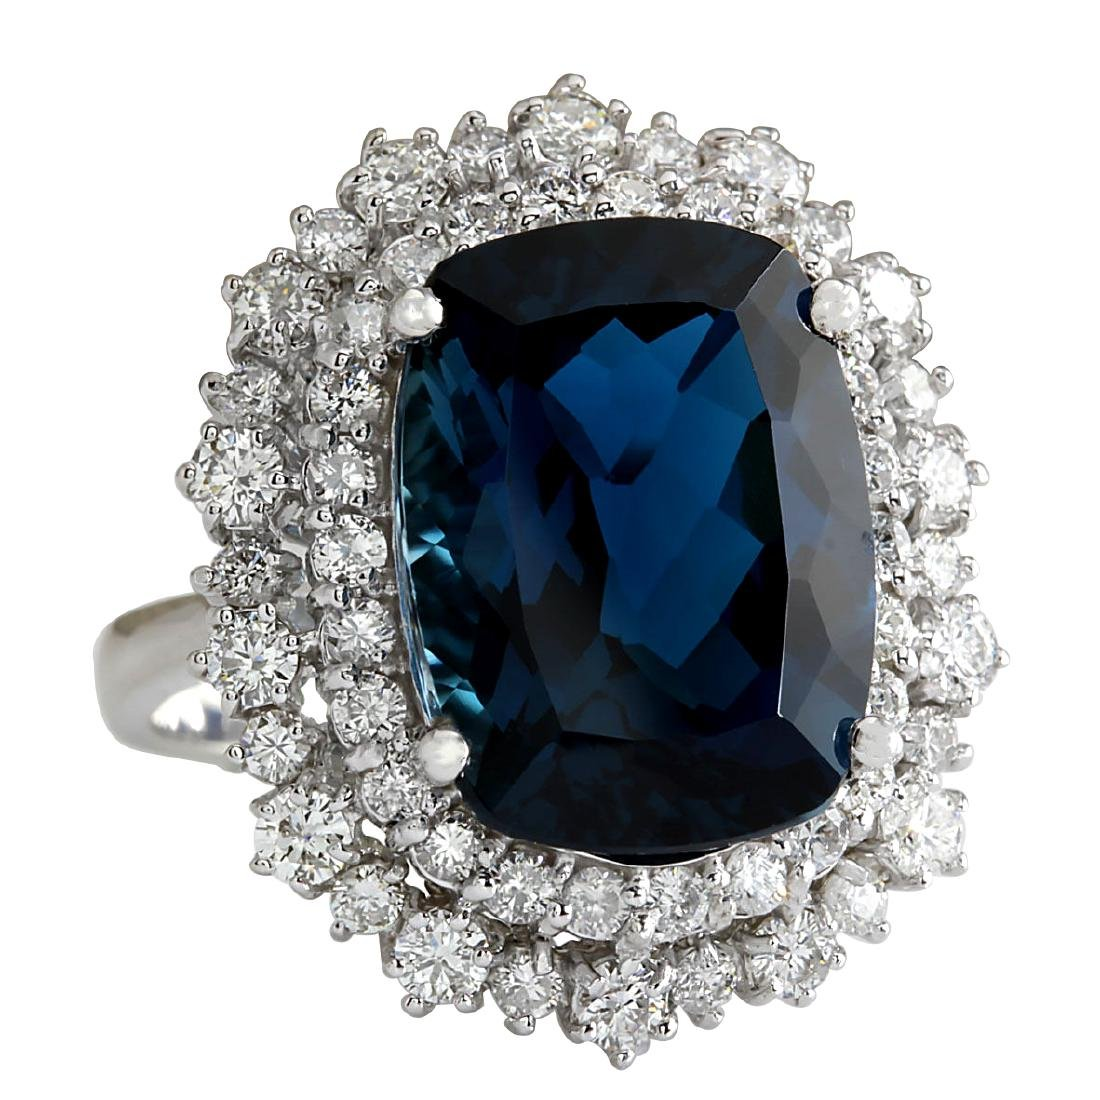 14.32Ct Natural London Blue Topaz And Diamond Ring - 2